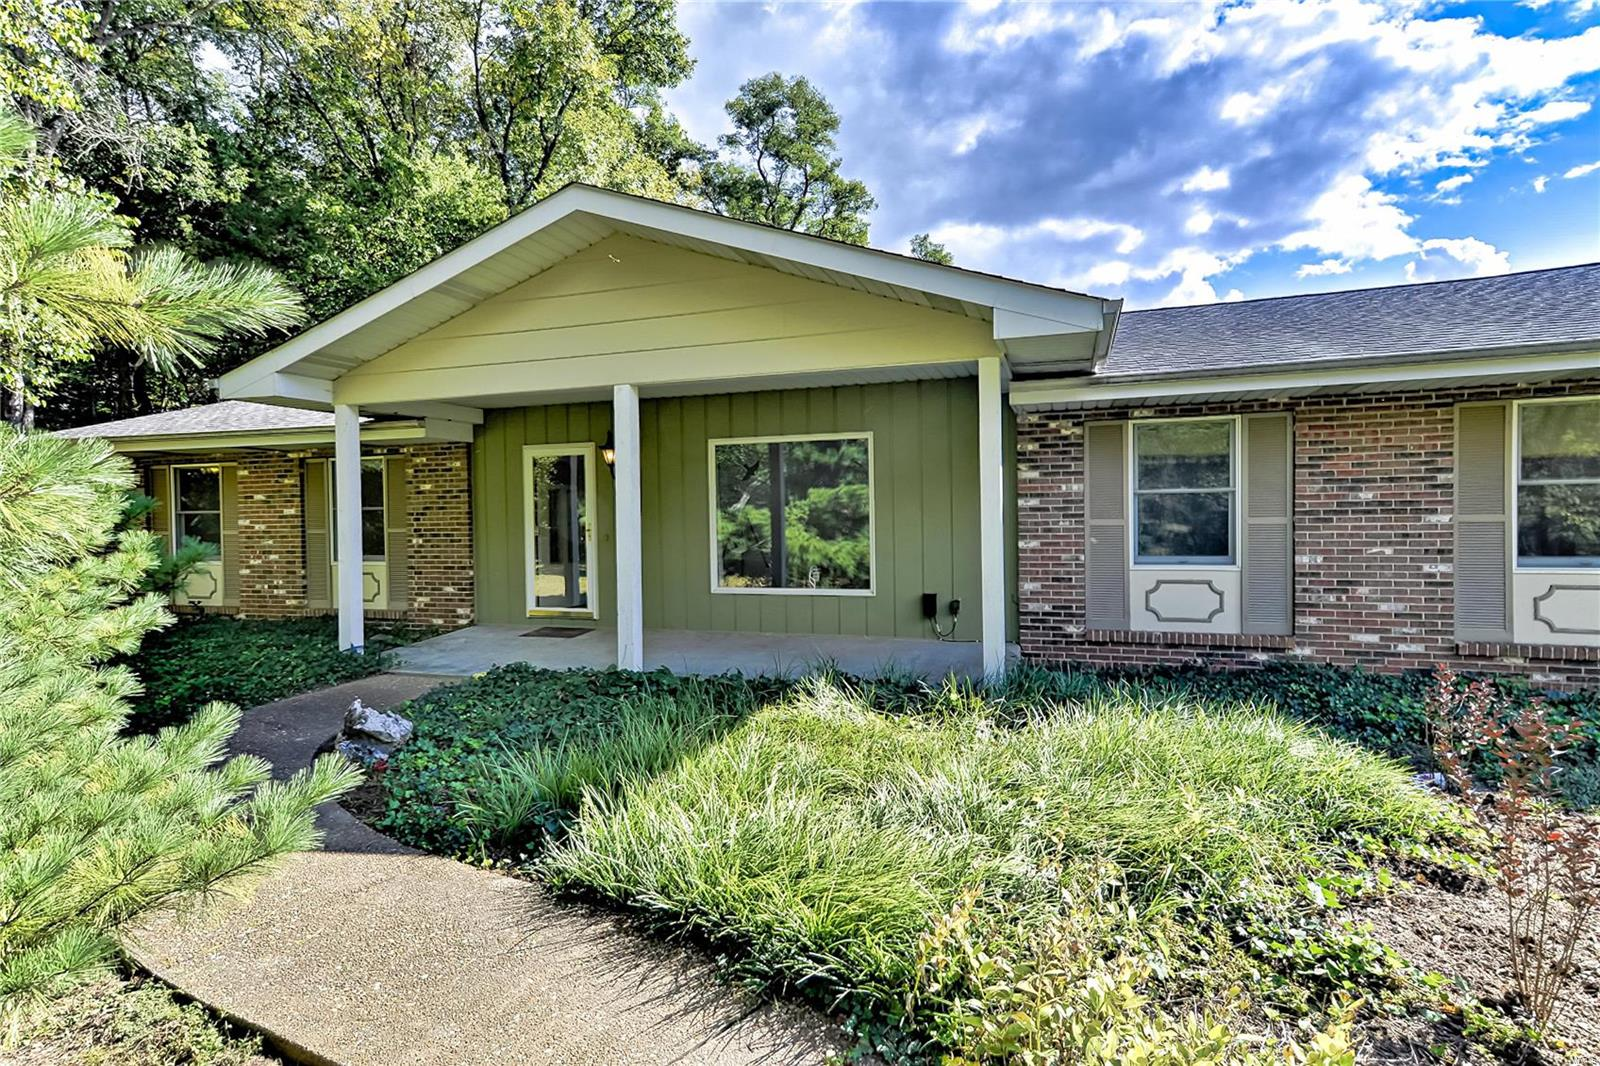 12 Nectar Lane Property Photo - Villa Ridge, MO real estate listing